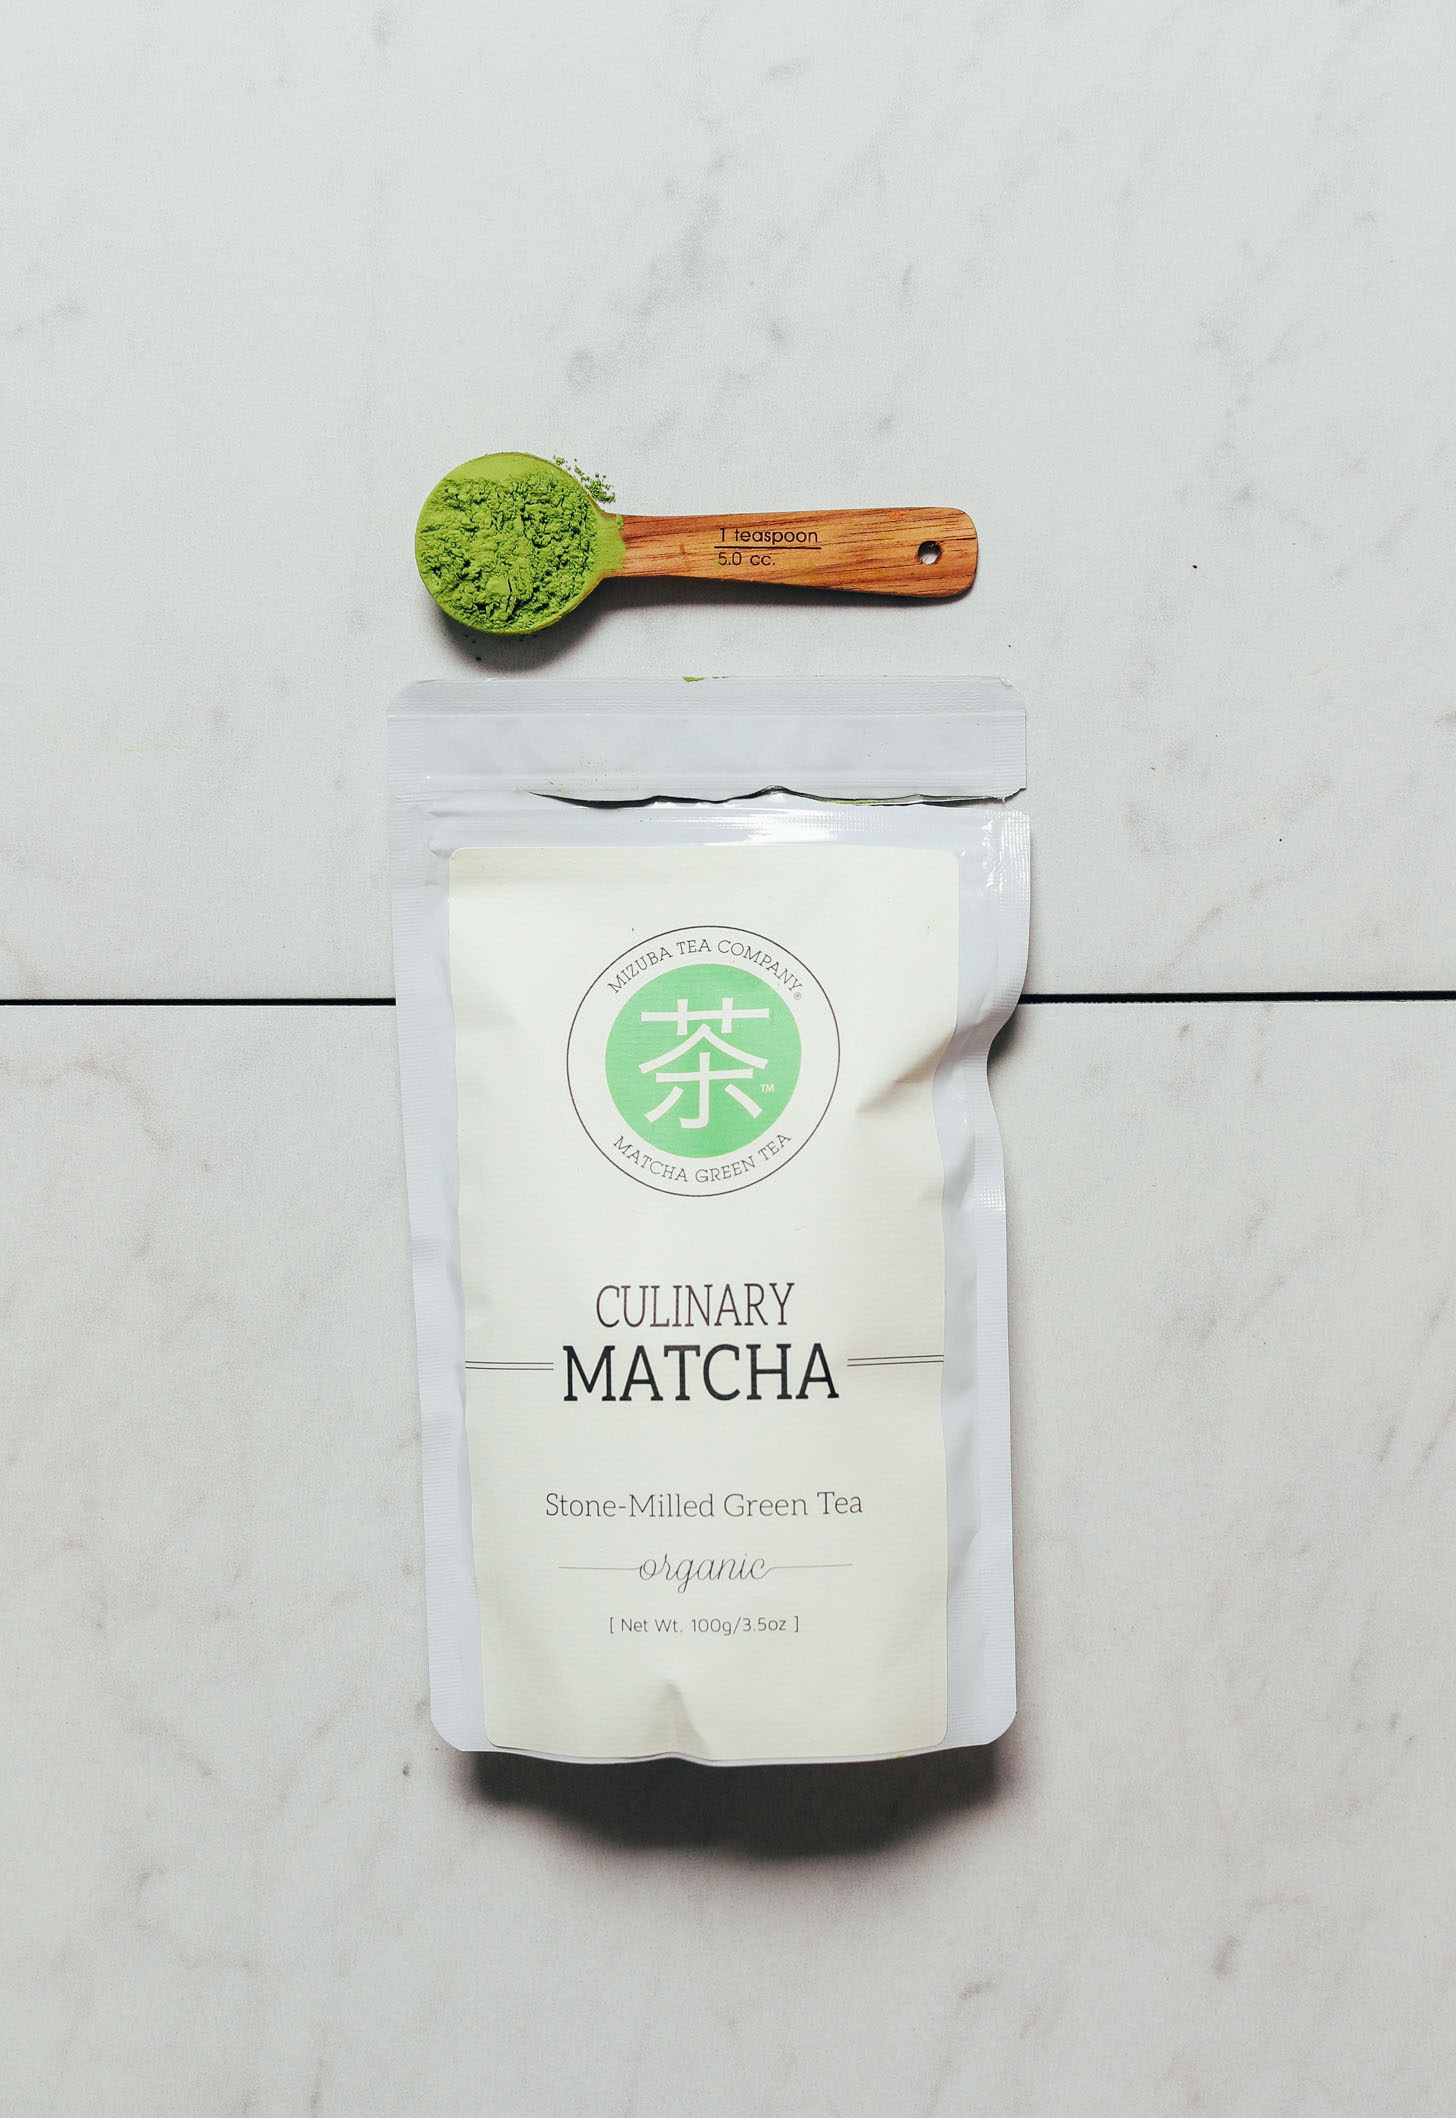 Spoonful and package of Mizuba Culinary Matcha for our review of the top matcha brands